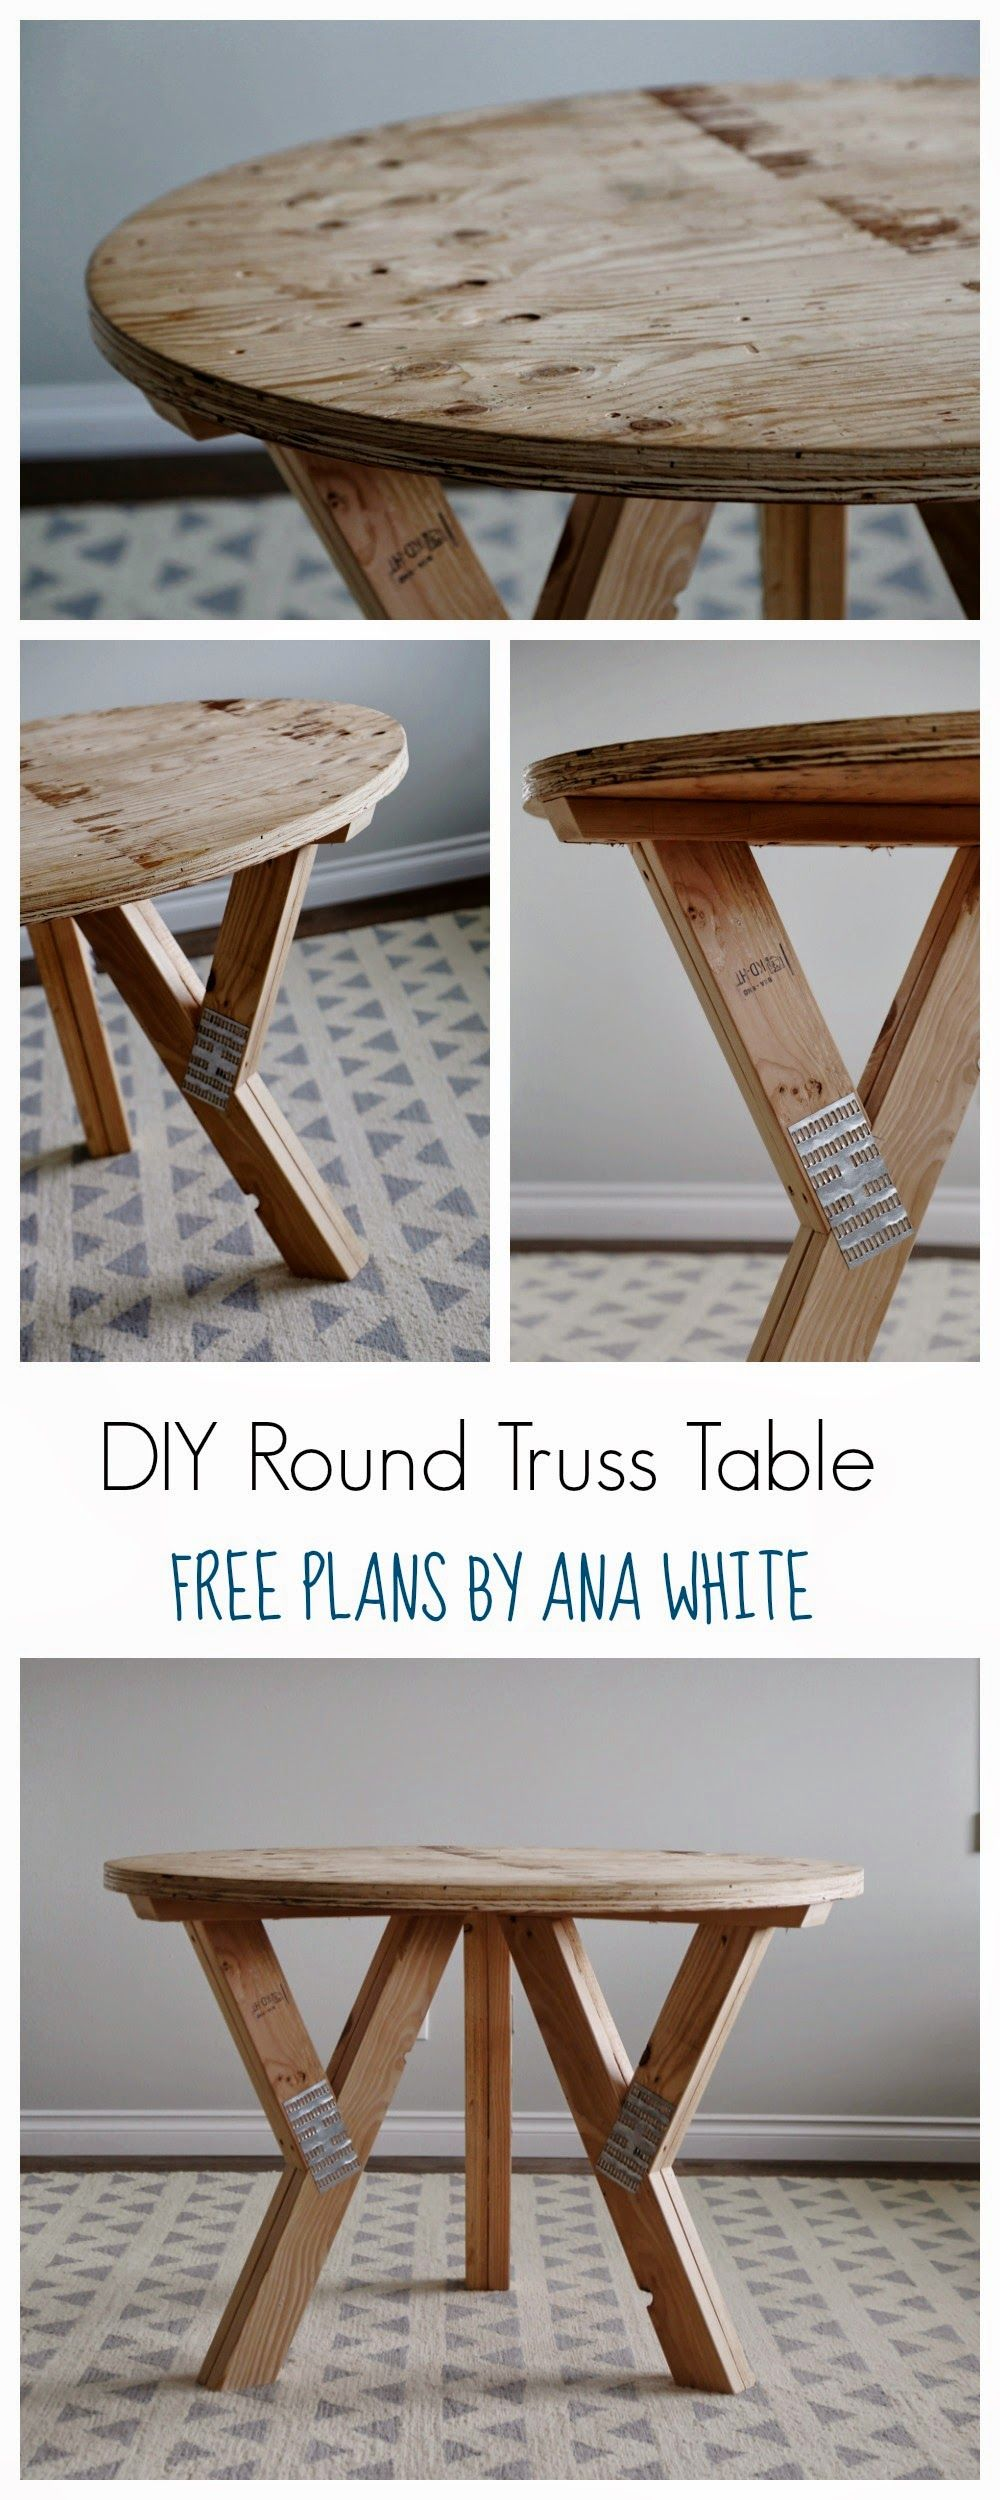 Ana white build a y truss round table free and easy diy ana white build a y truss round table free and easy diy project and keyboard keysfo Images